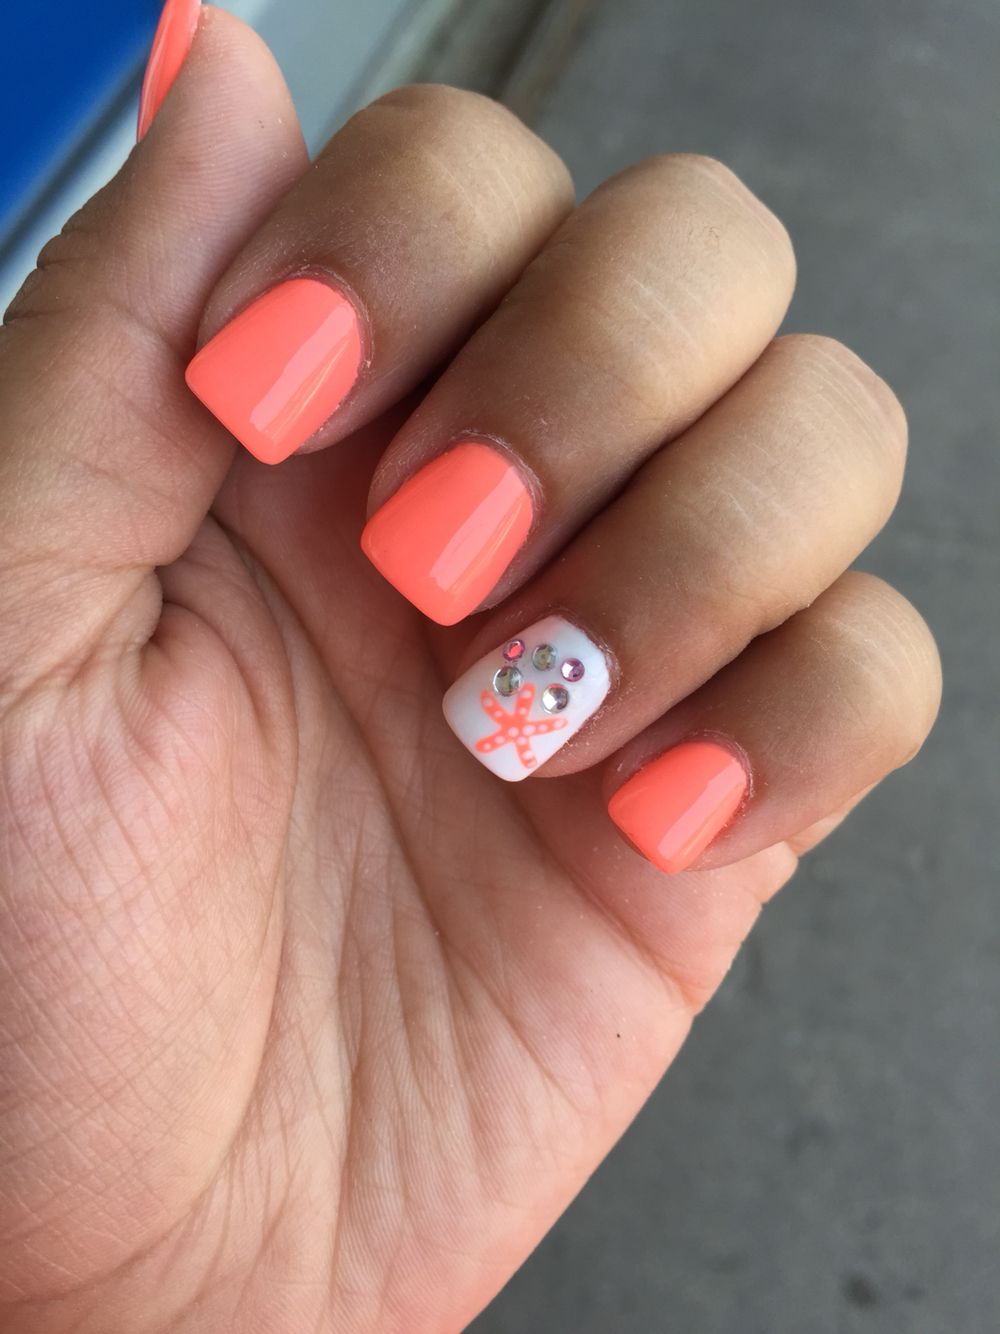 Lilshawtybad| summer nail art design - phancy phalanges. | Pinterest ...